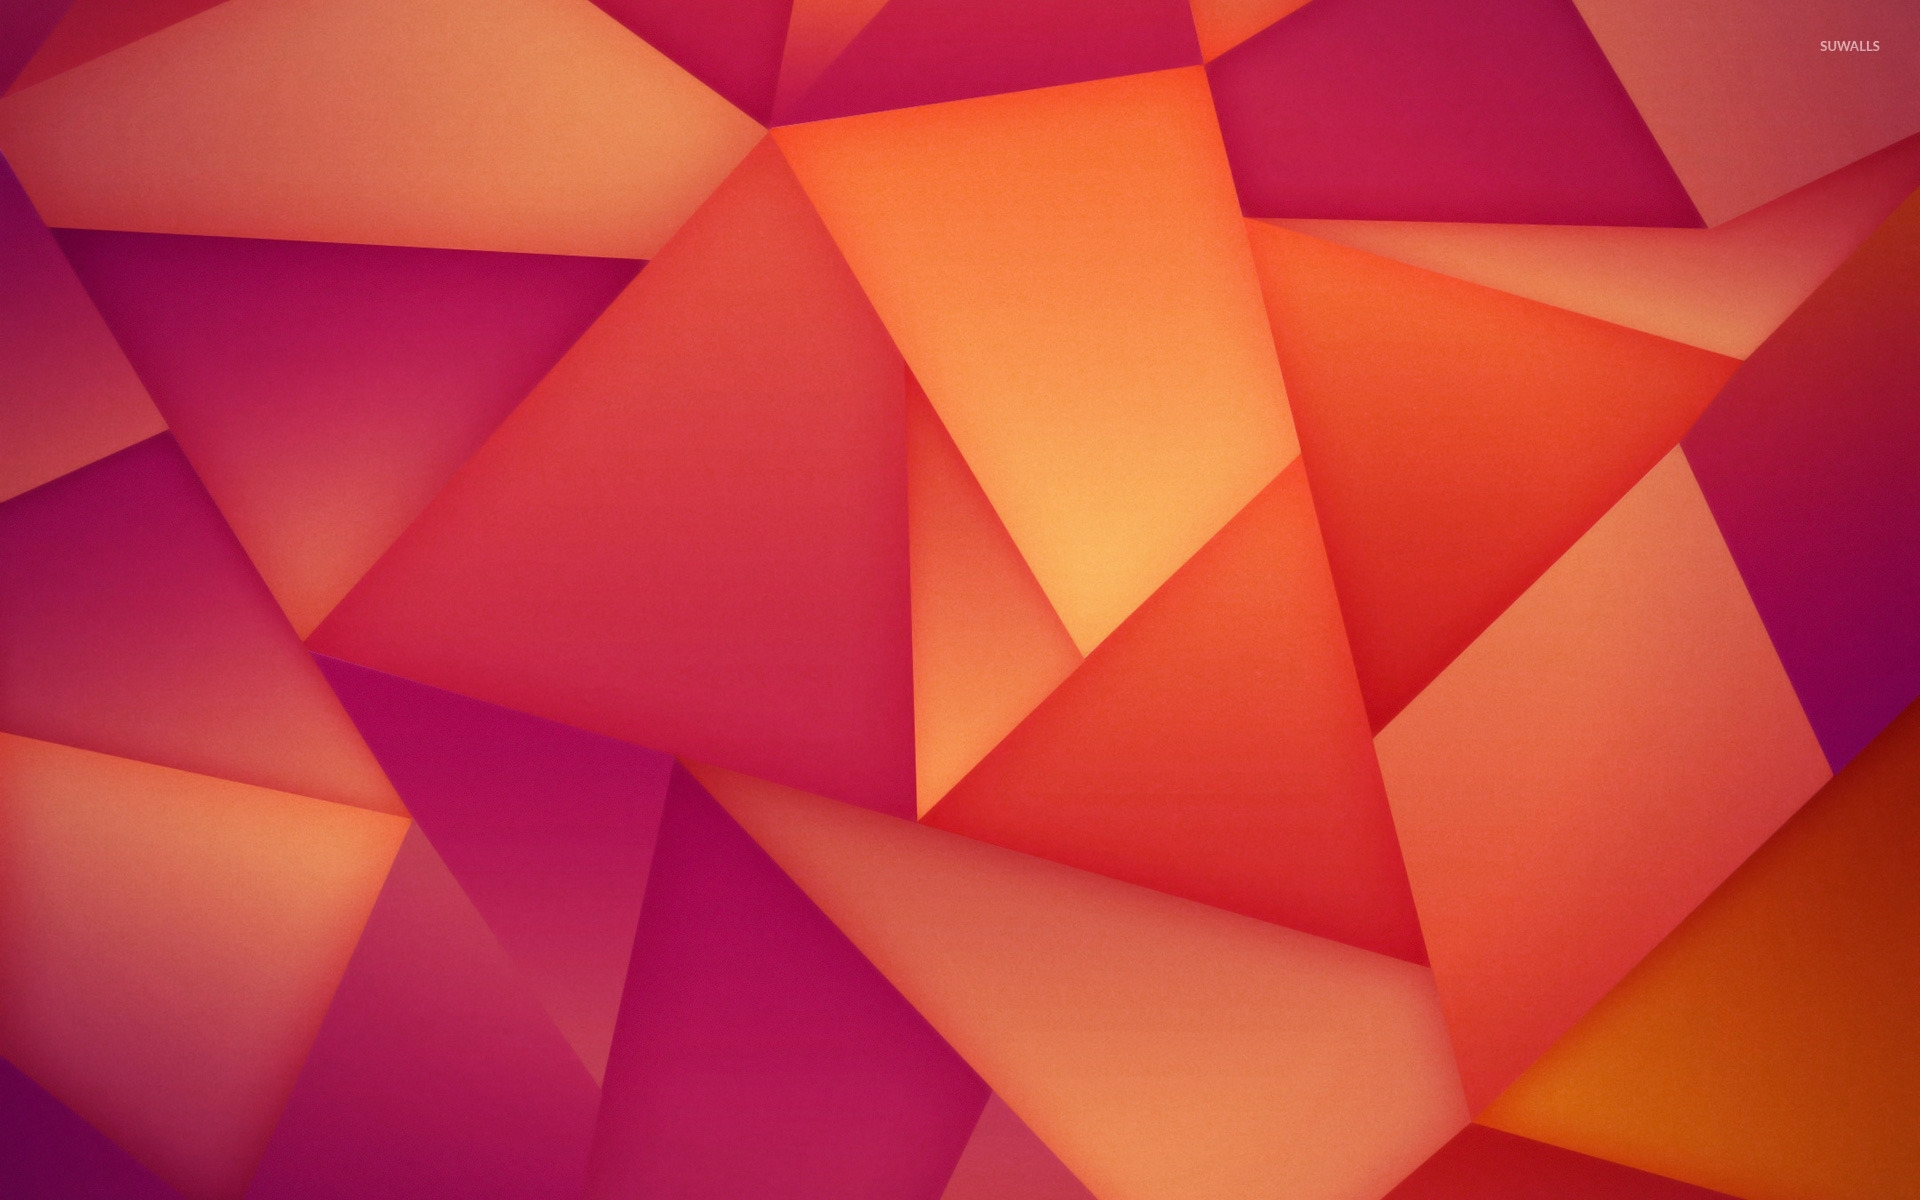 orange and purple polygons wallpaper - abstract wallpapers - #25819